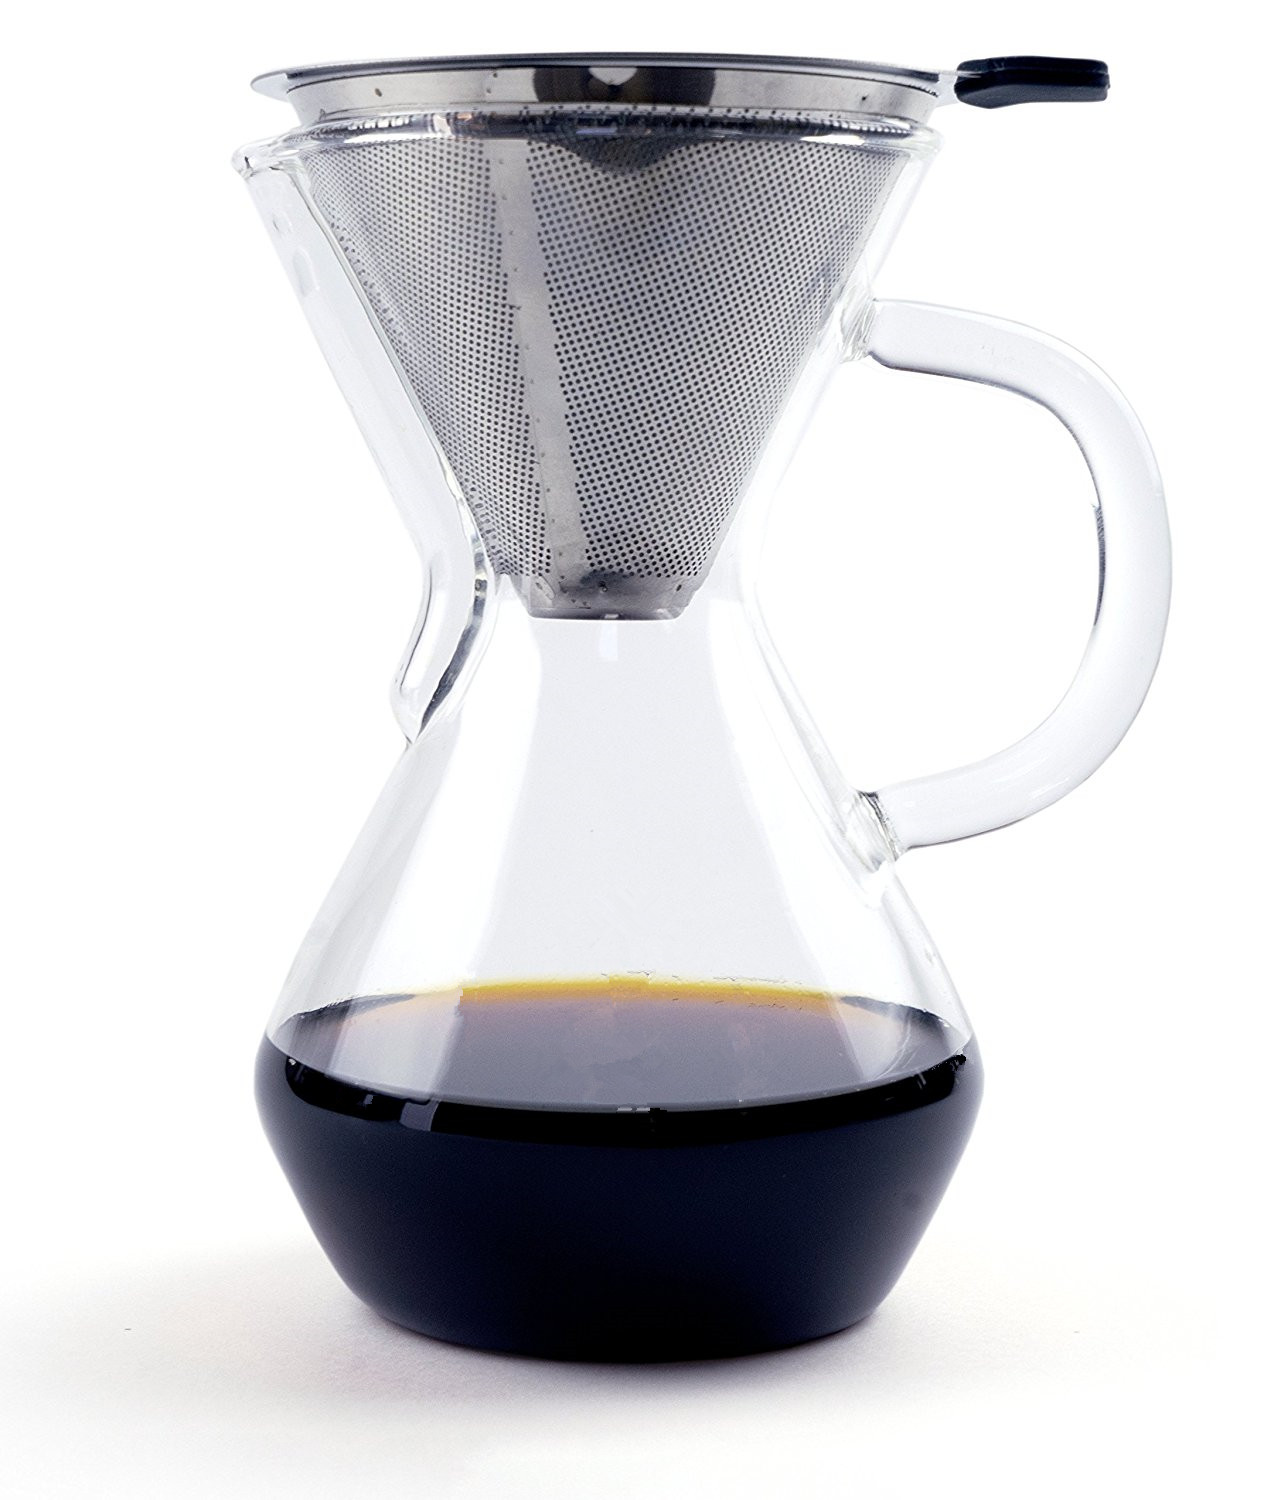 Pour Over Coffee Maker 17oz Brewer BPA Free Borosilicate Glass Carafe Pitcher